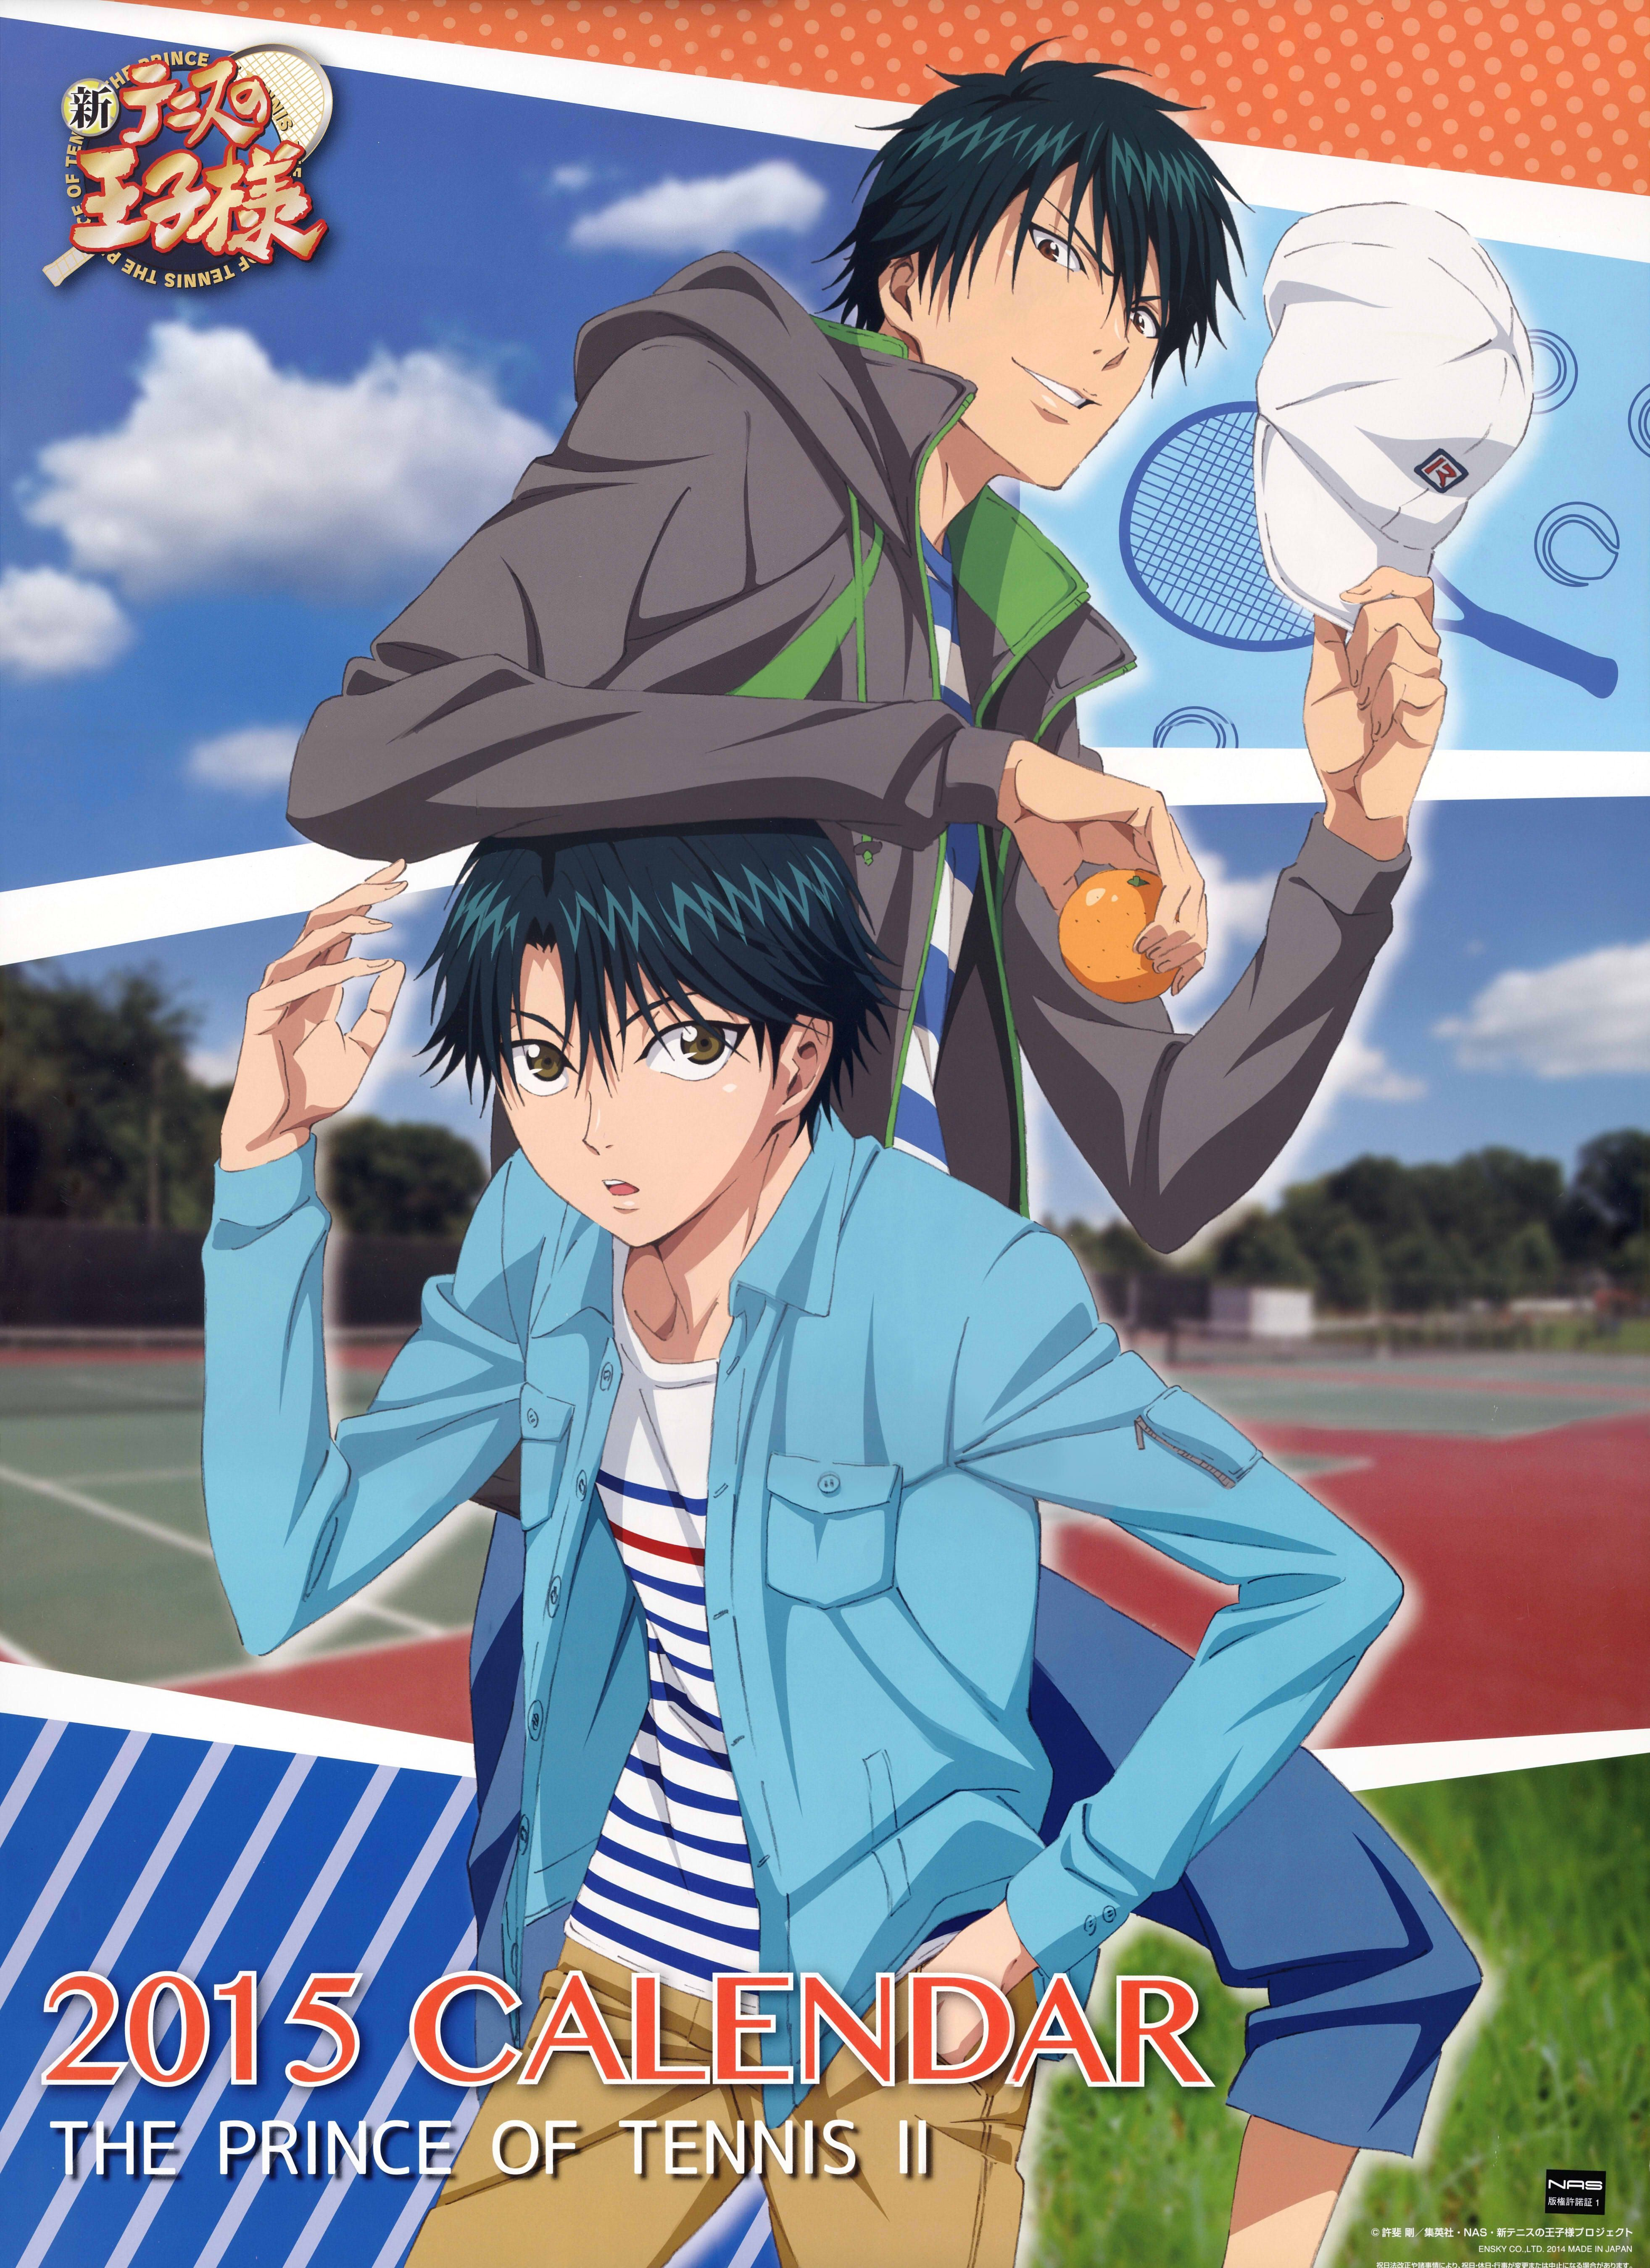 New Prince Of Tennis 1816472 Prince Of Tennis Anime Anime Prince The Prince Of Tennis